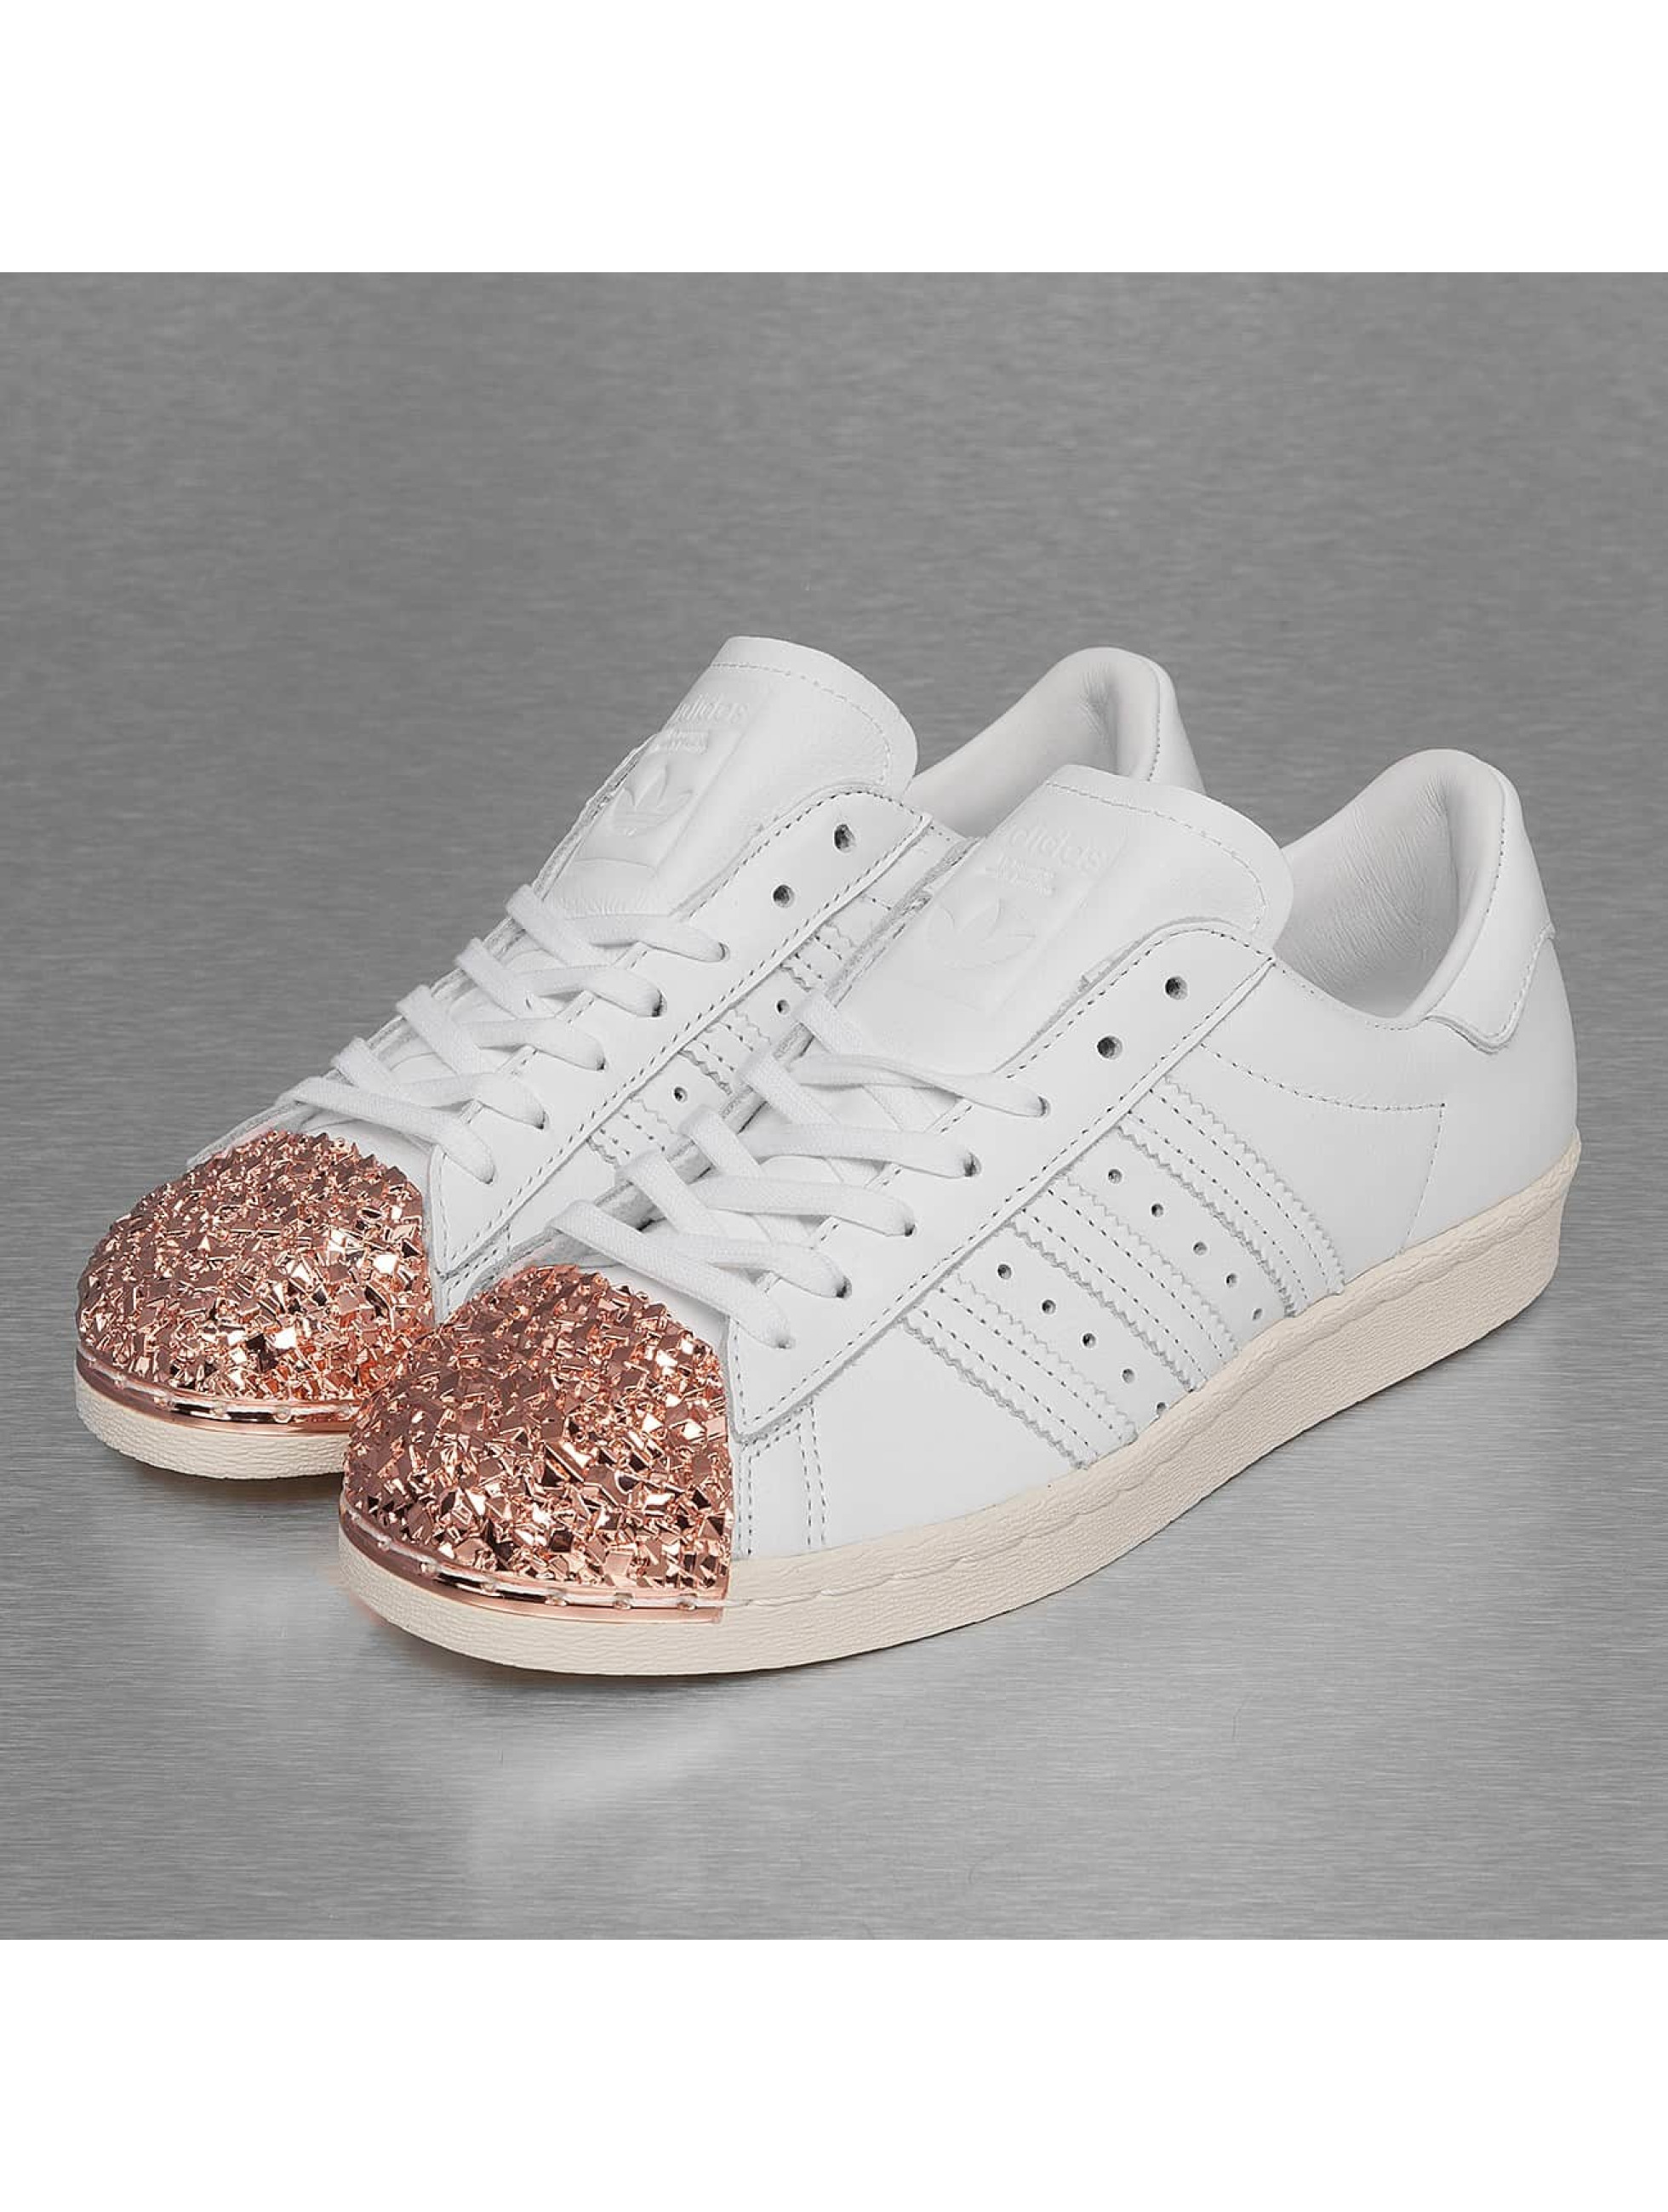 Adidas Superstar Vorne Metall